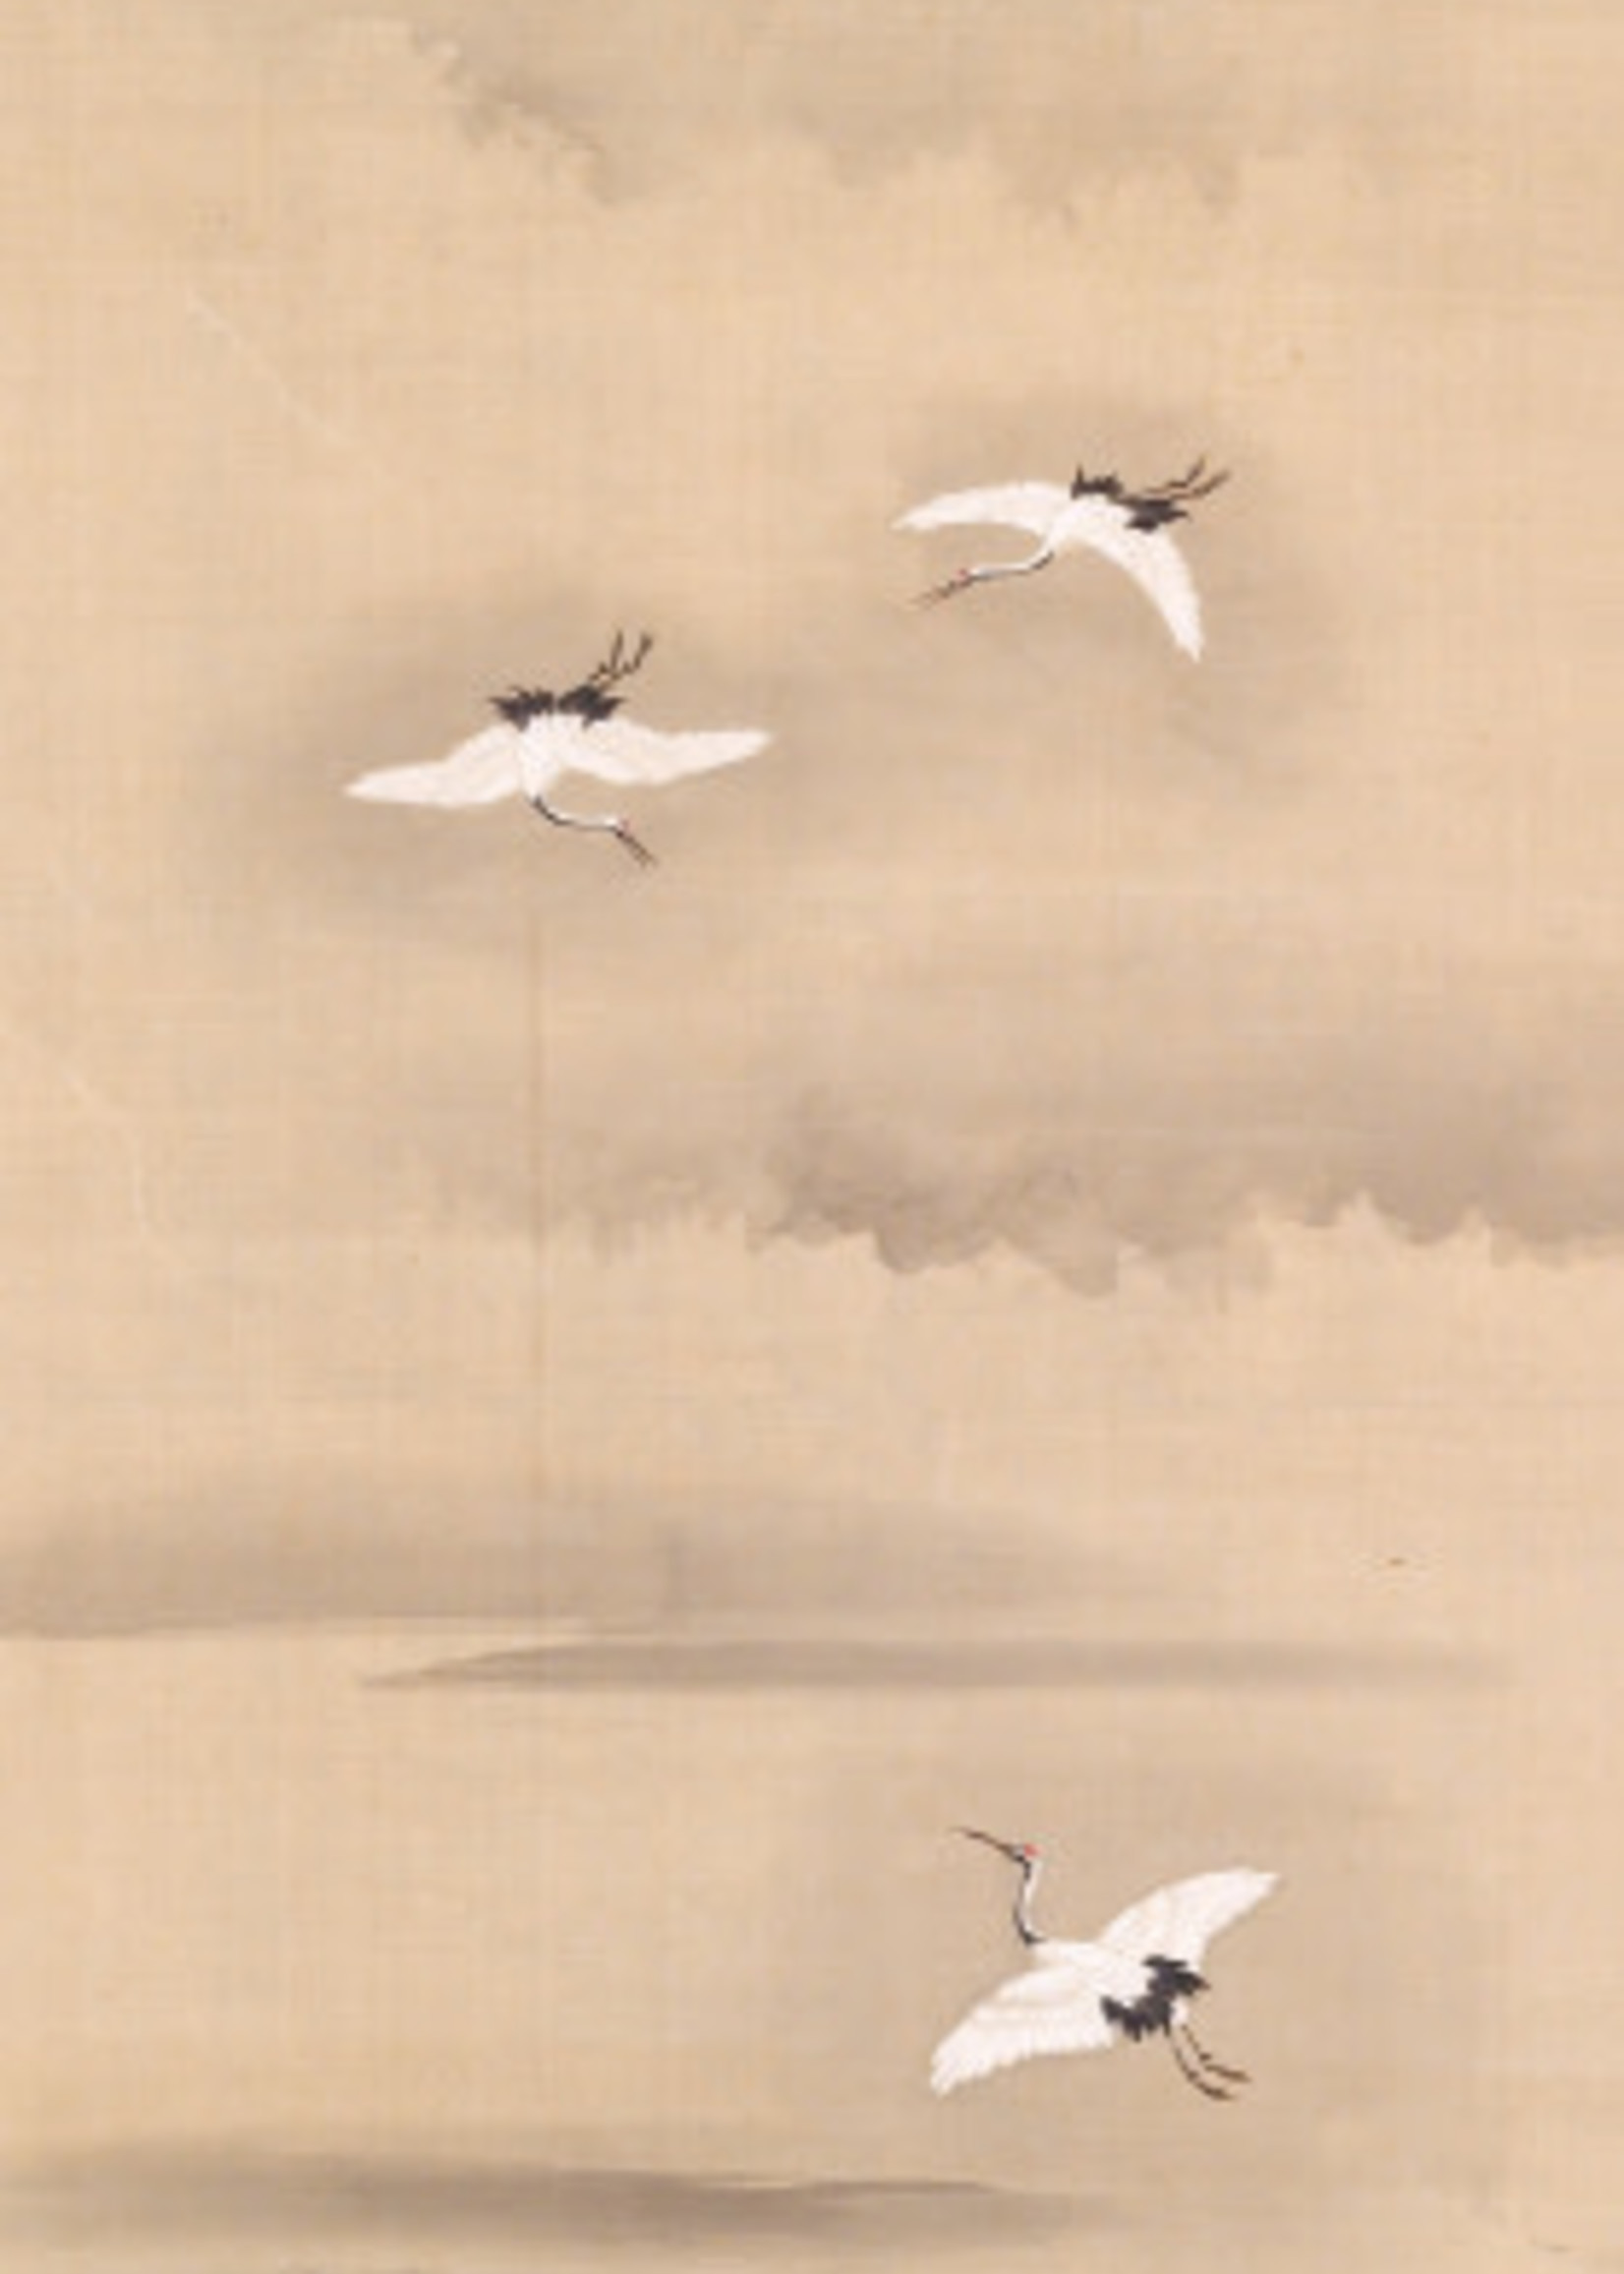 Bookmark Three Cranes Flying in a Misty Landscape